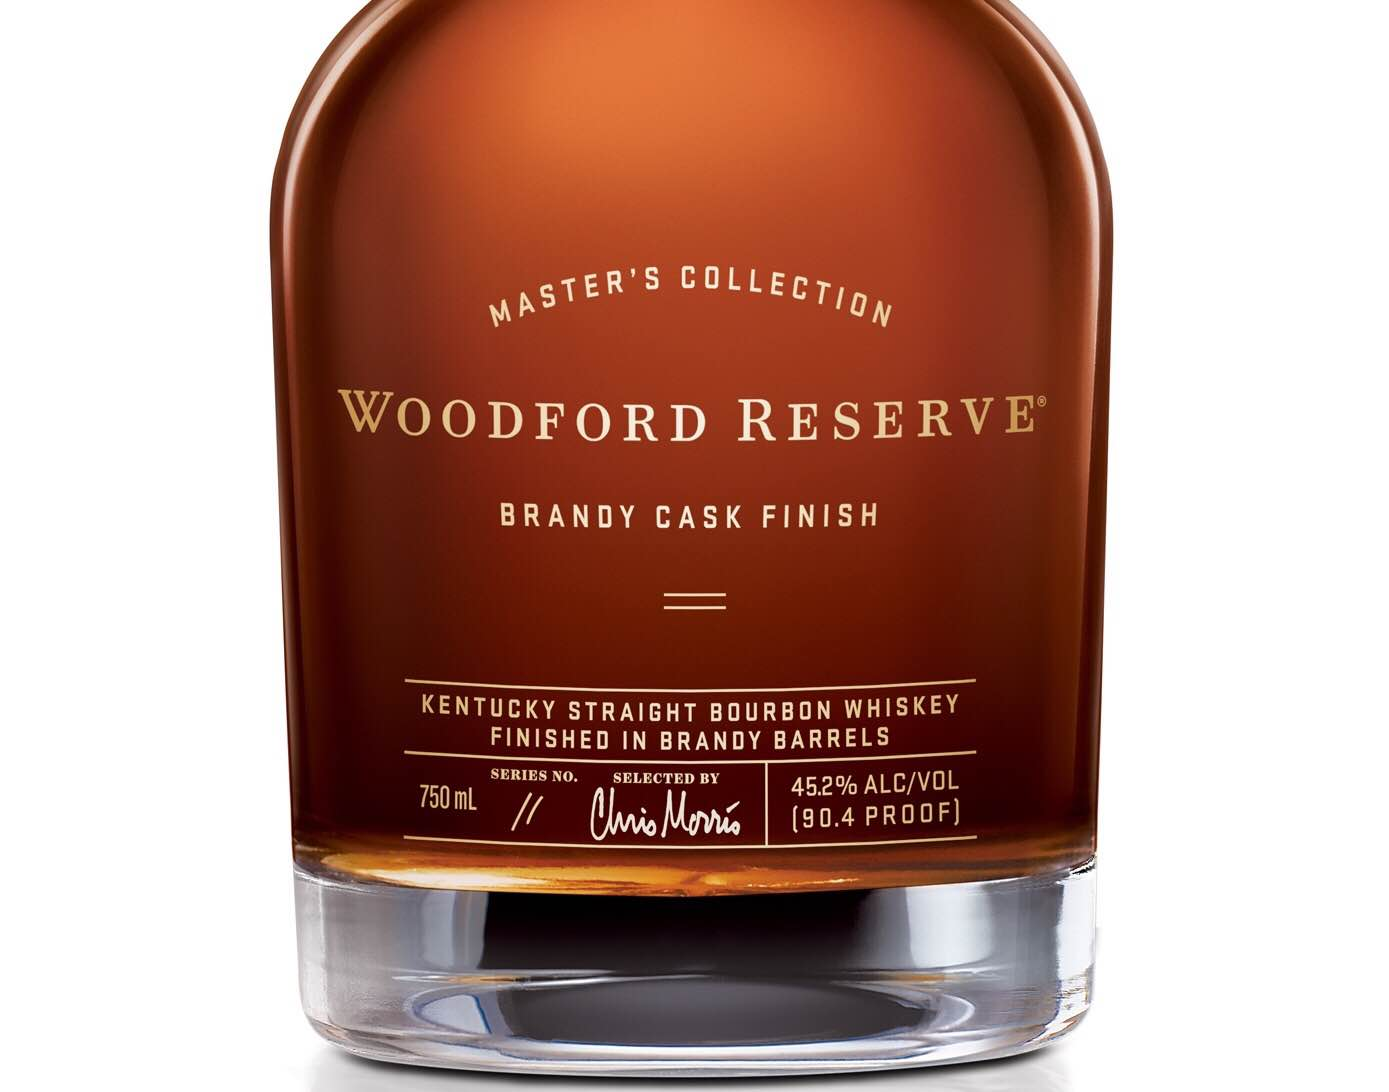 Woodford Releases 2016 Master's Collection